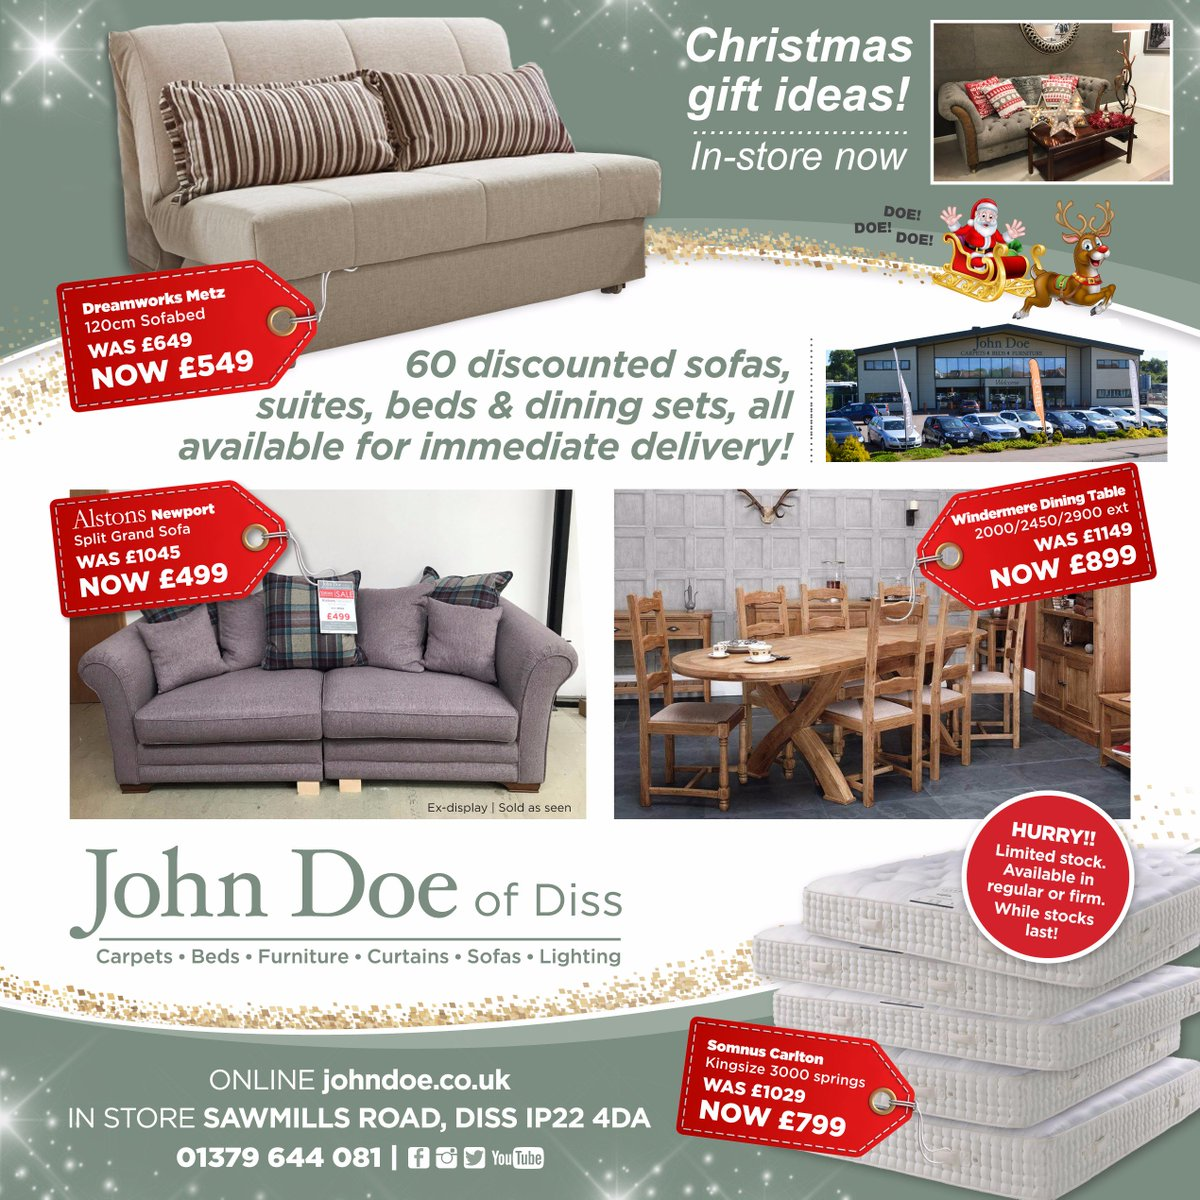 With 60 discounted  sofas   suites   beds    dining sets all available for  immediate delivery   In store now   Sawmills Road   Diss  IP22 4DA or  online. John Doe of Diss   JohnDoeDiss    Twitter